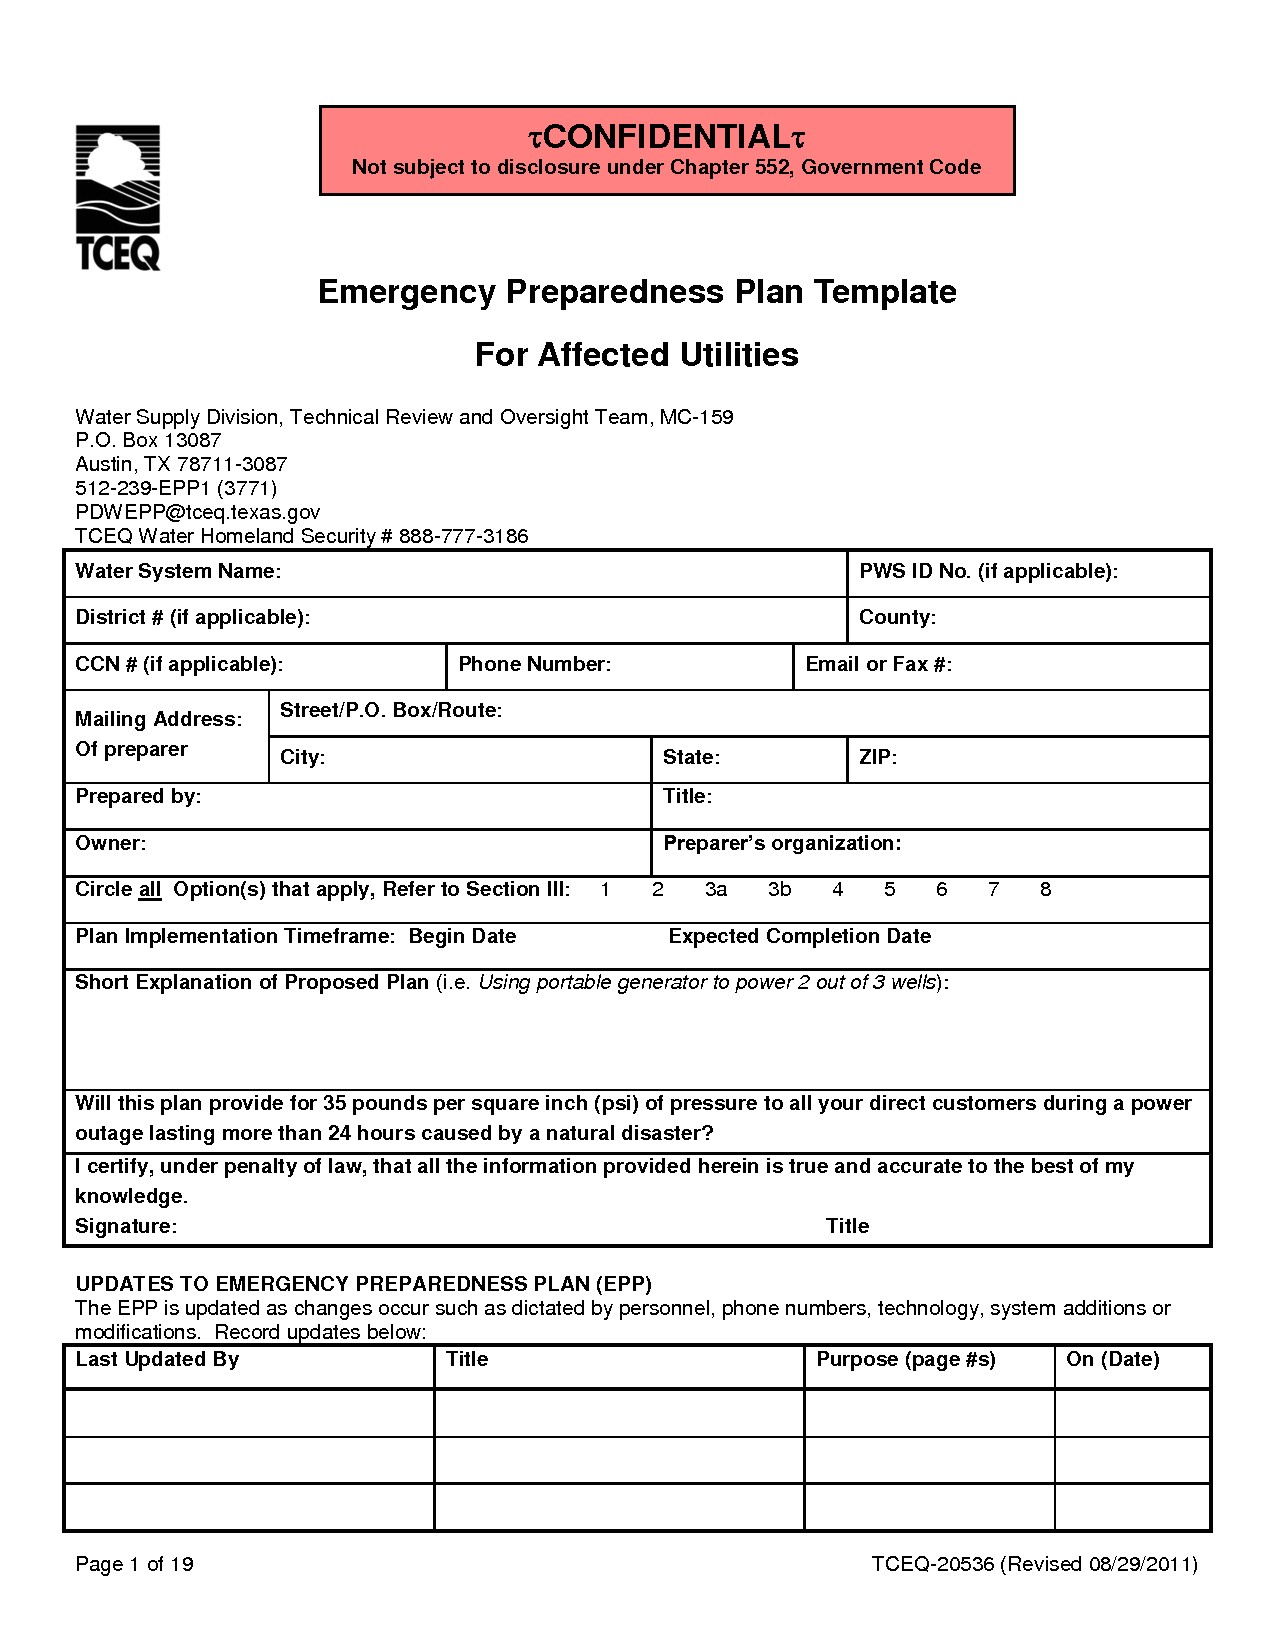 post emergency preparedness plan sample 295882